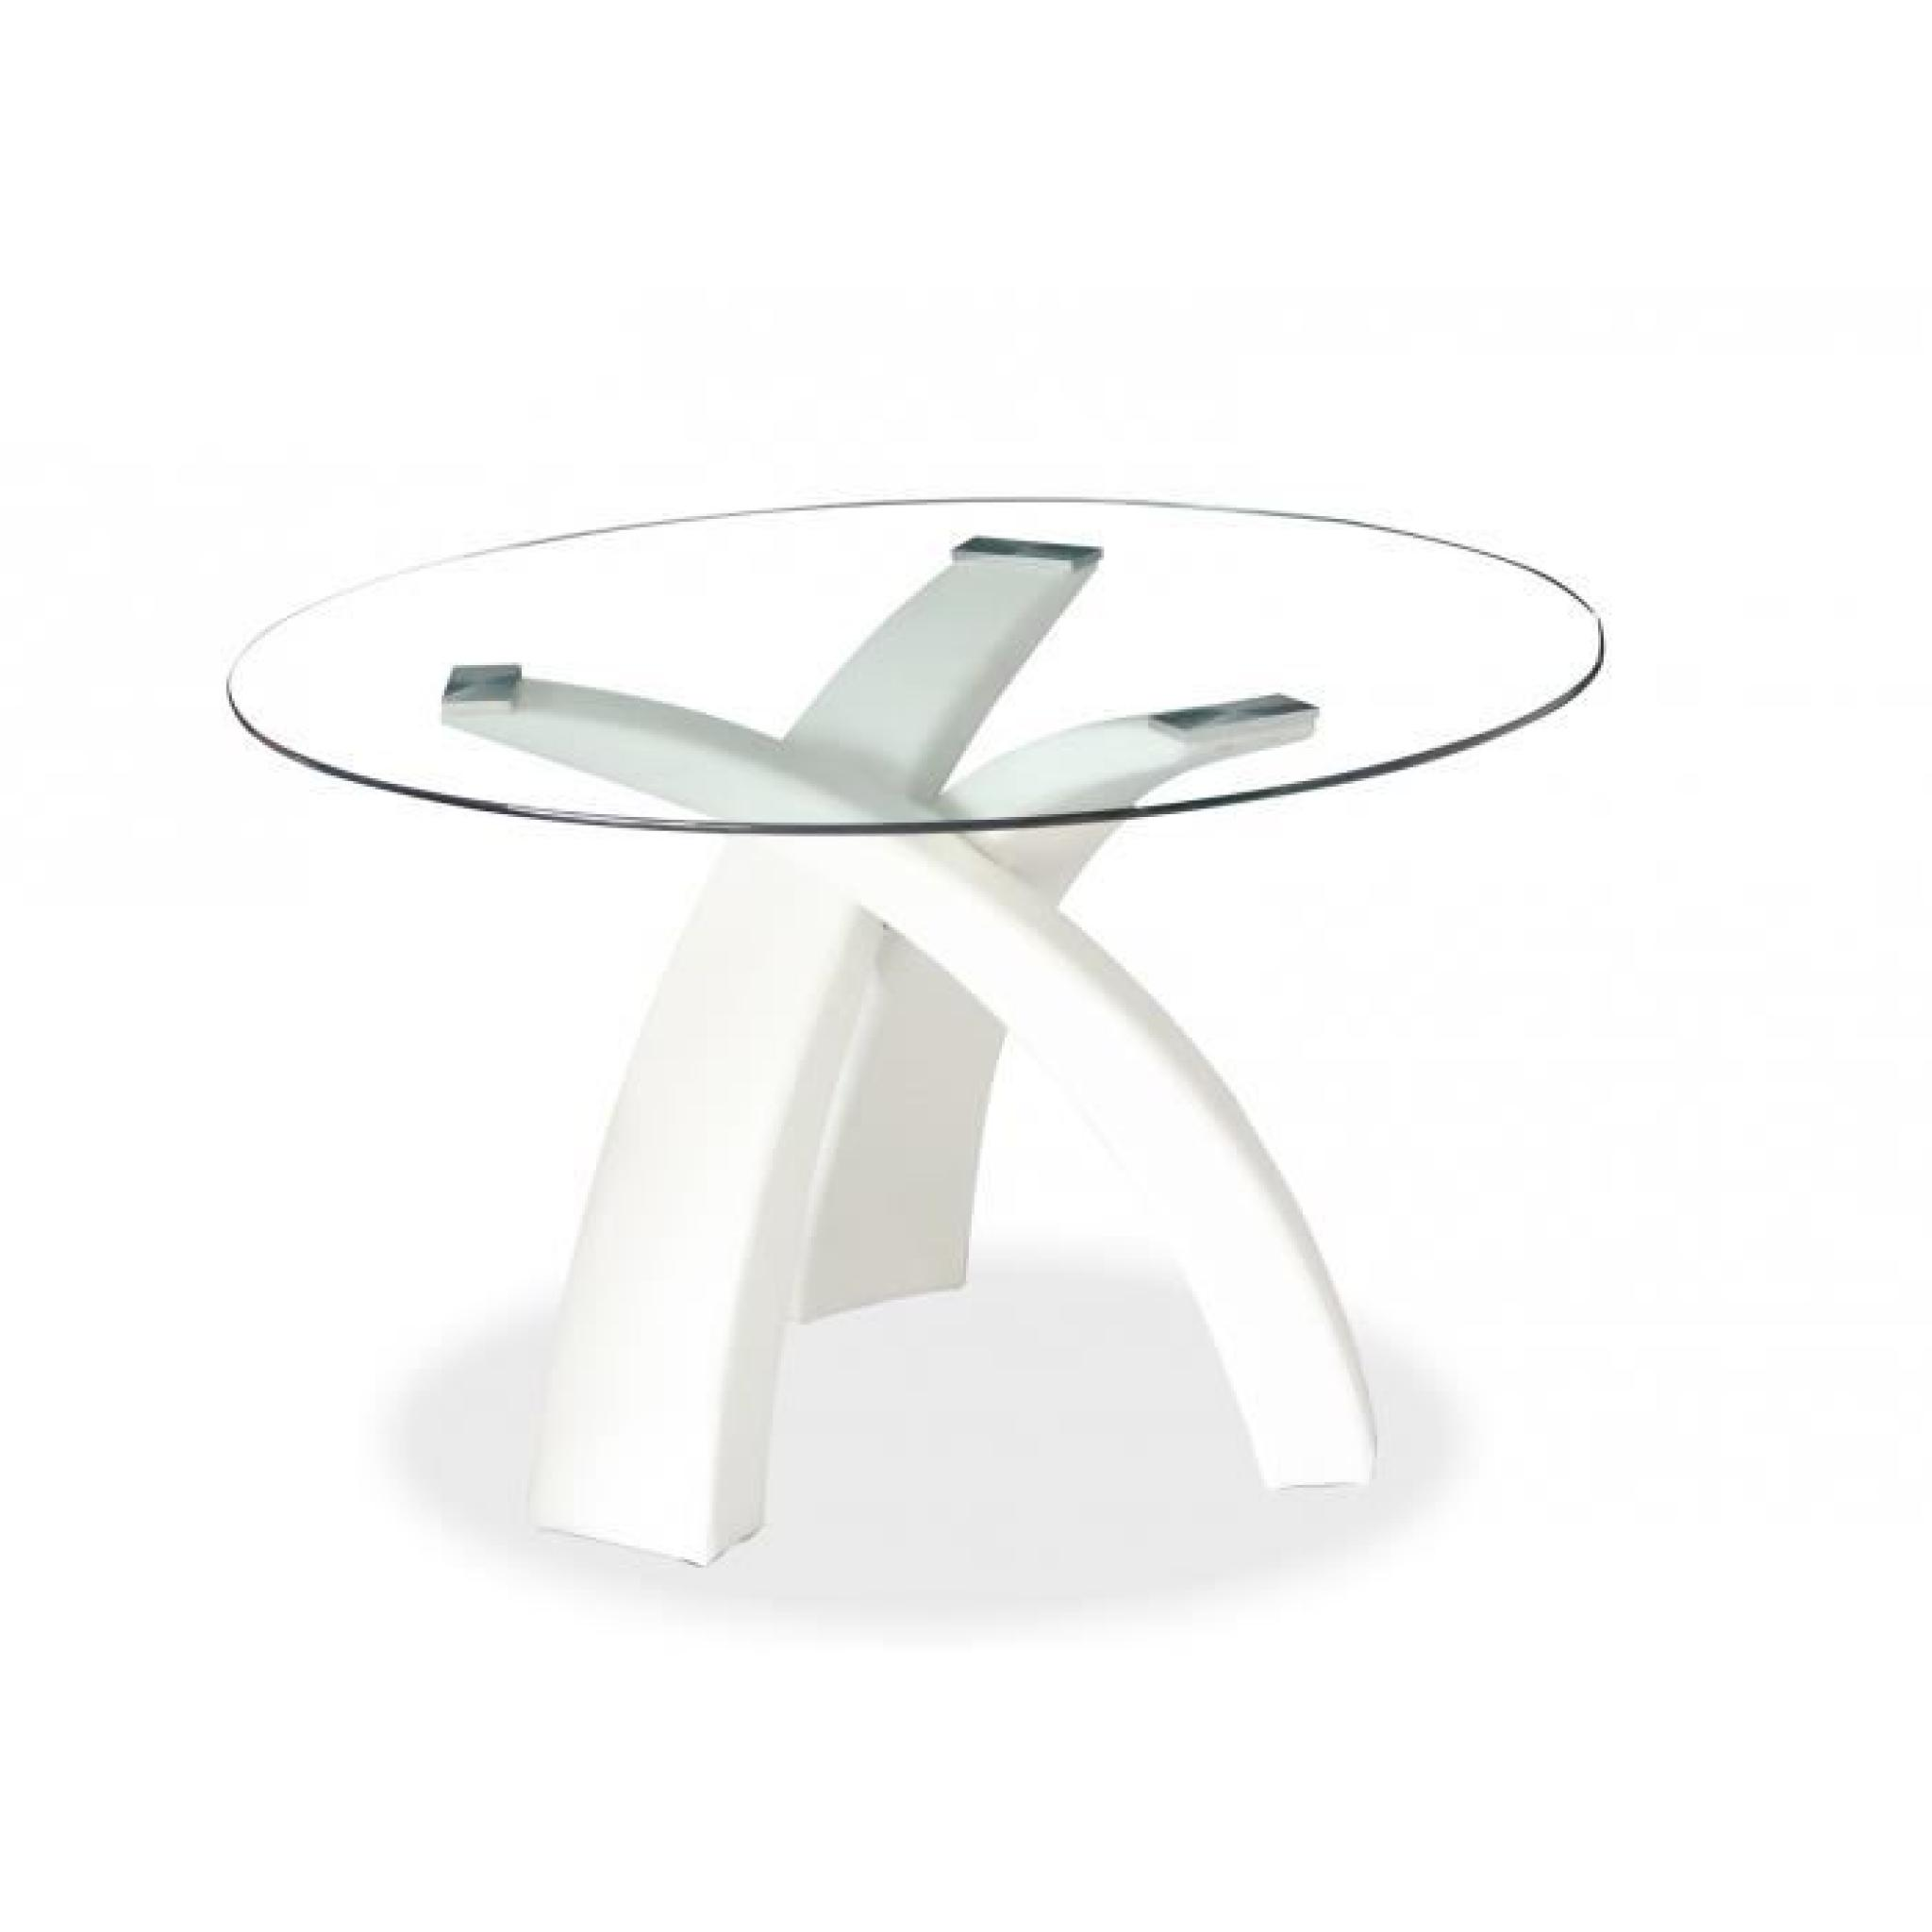 Table manger ronde blanche gore achat vente table for Table a manger ronde design